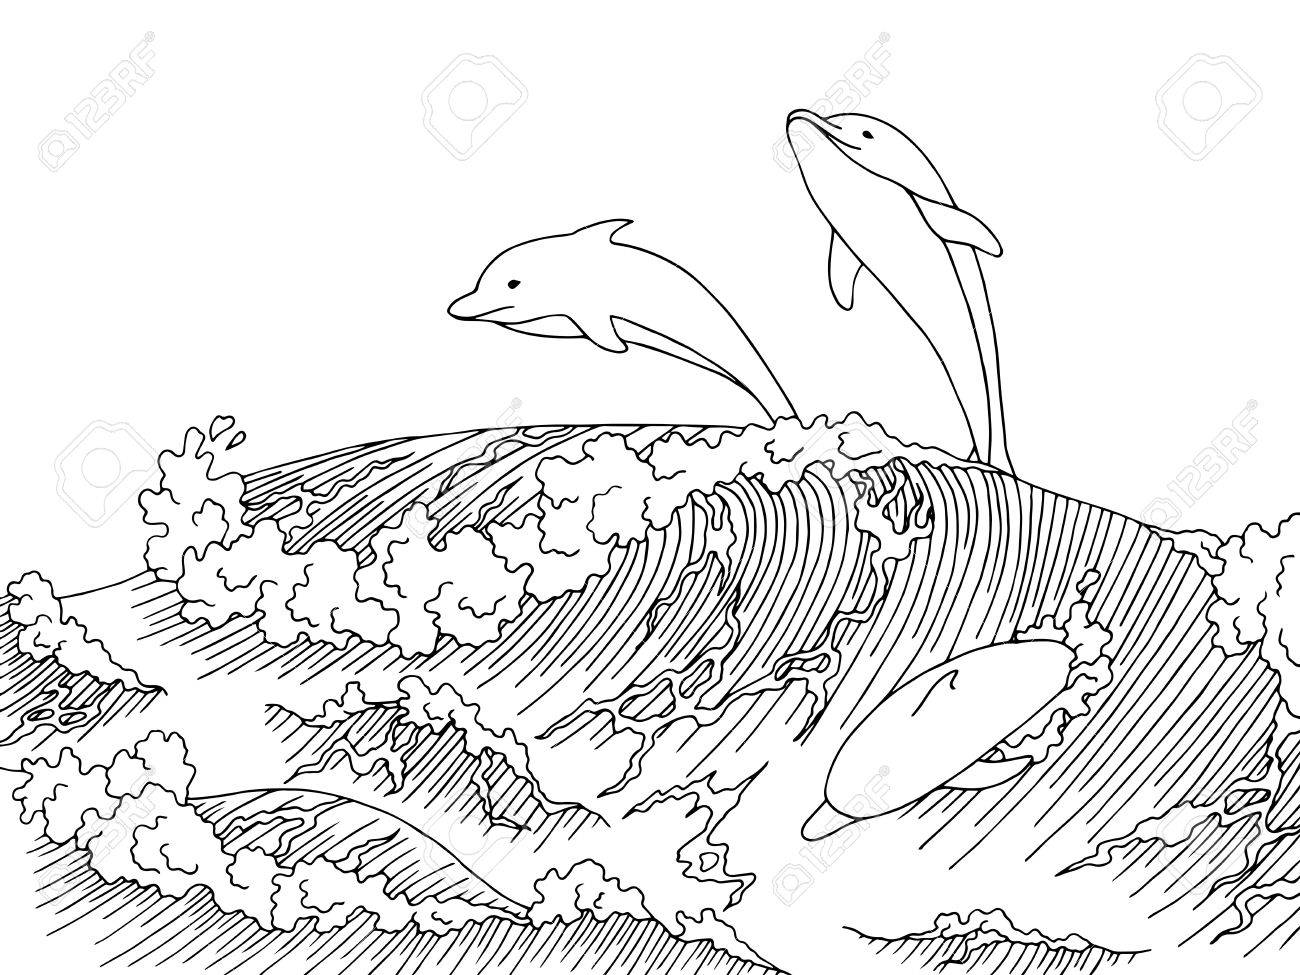 1300x975 Sea Dolphins Wave Graphic Art Surf Black White Landscape Sketch